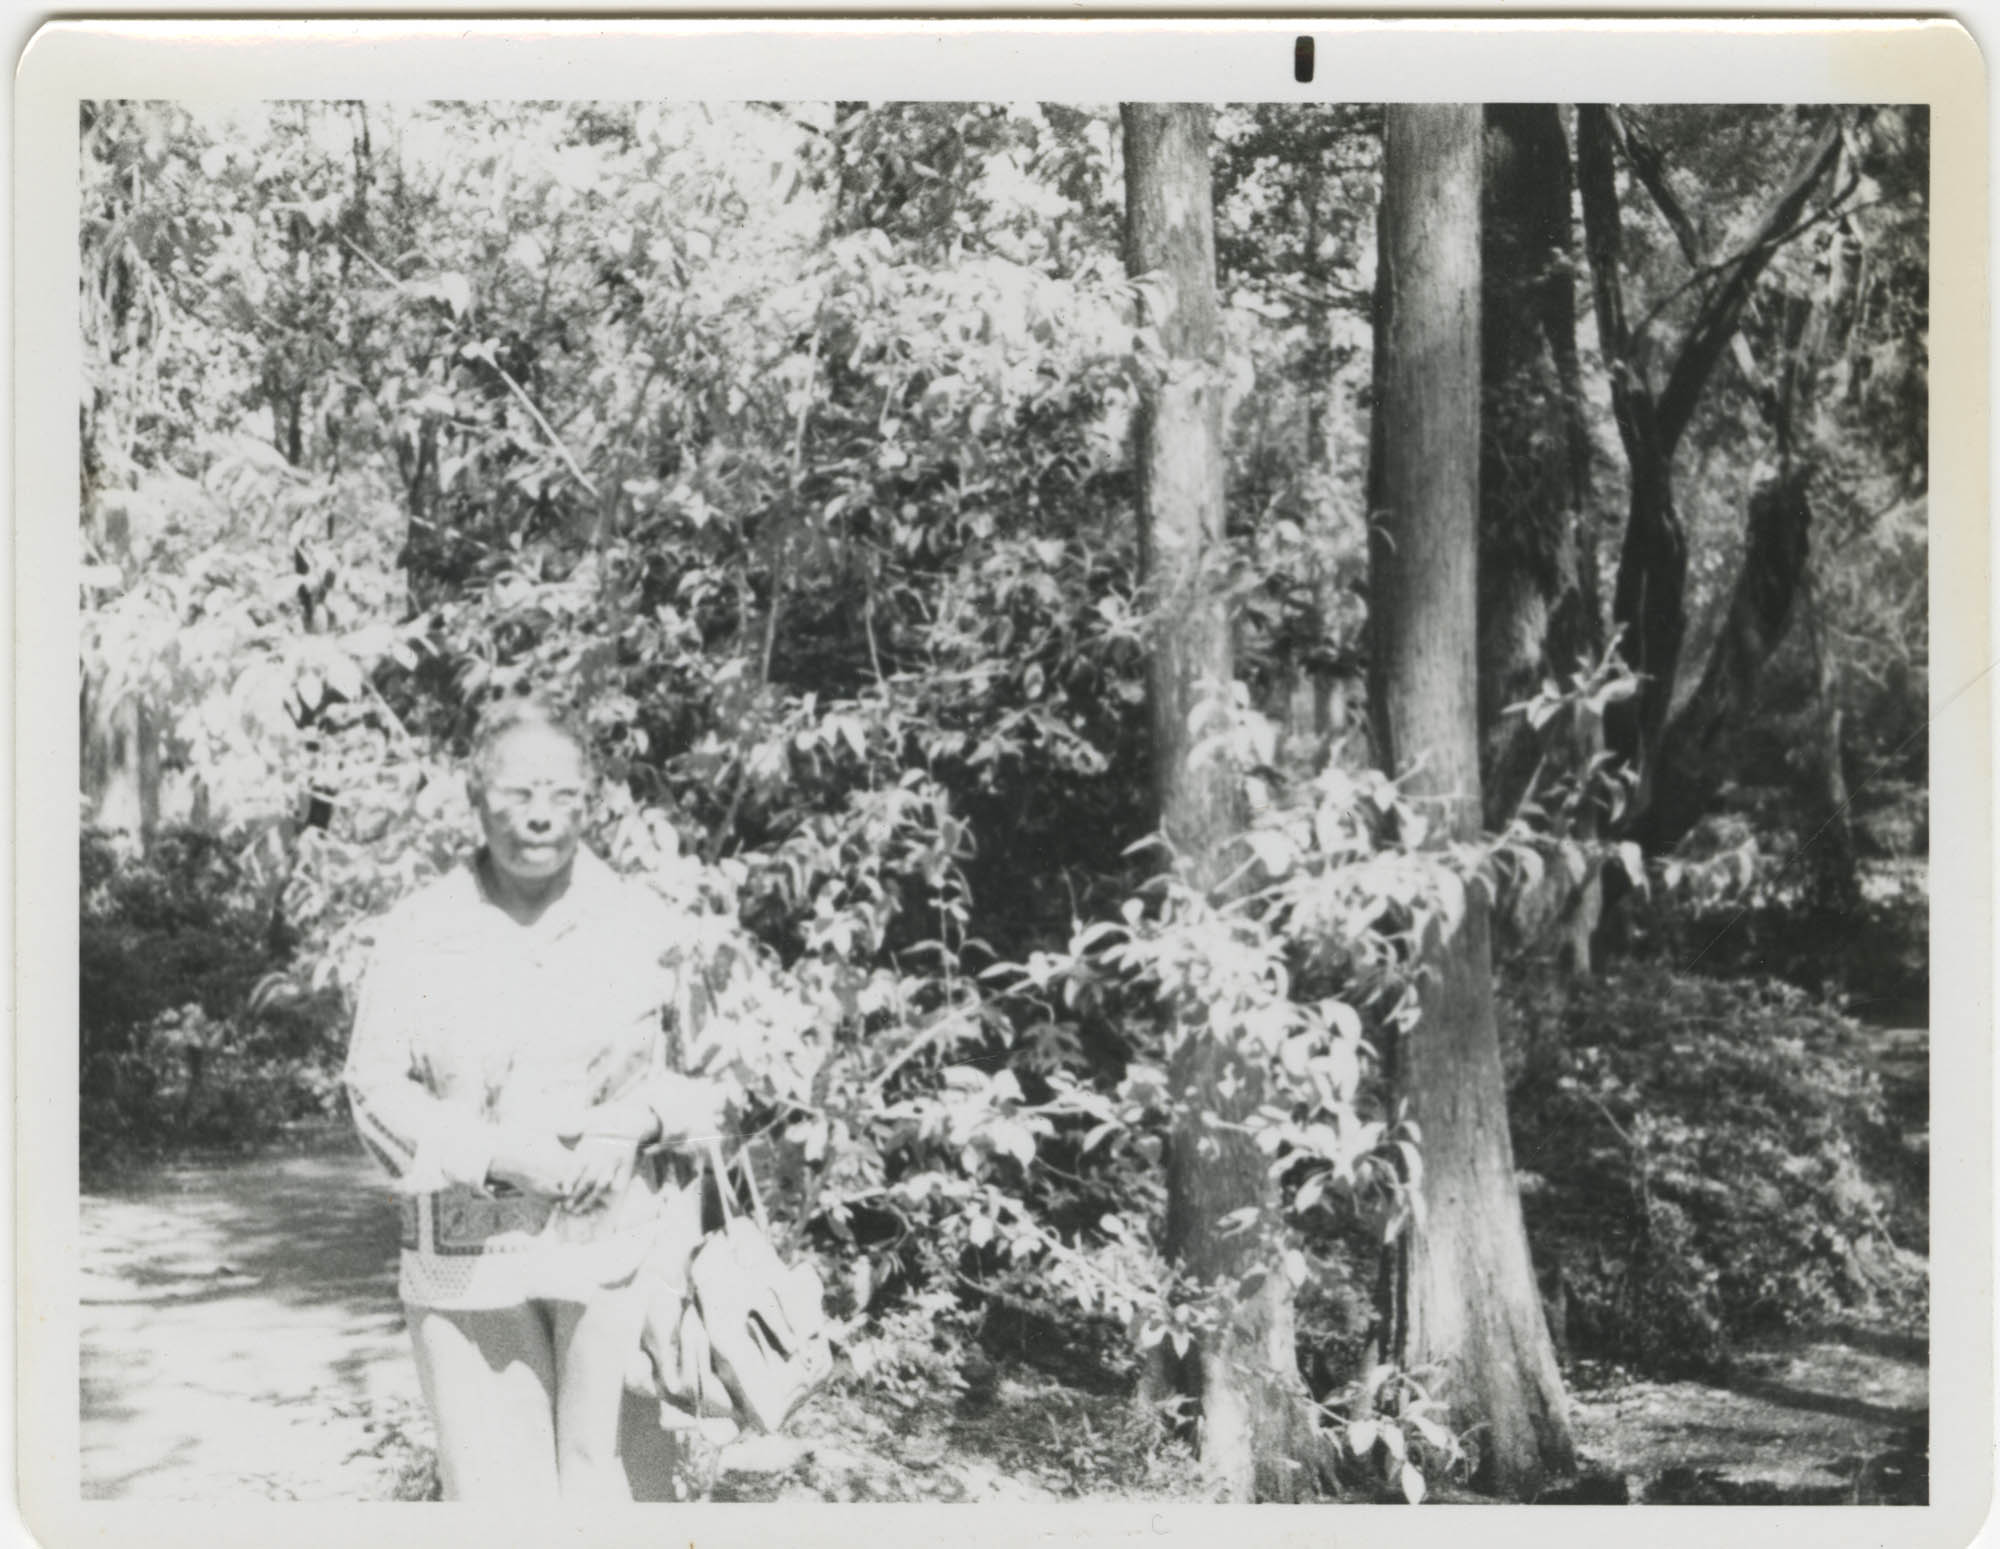 Photograph of a Woman Standing Outdoors